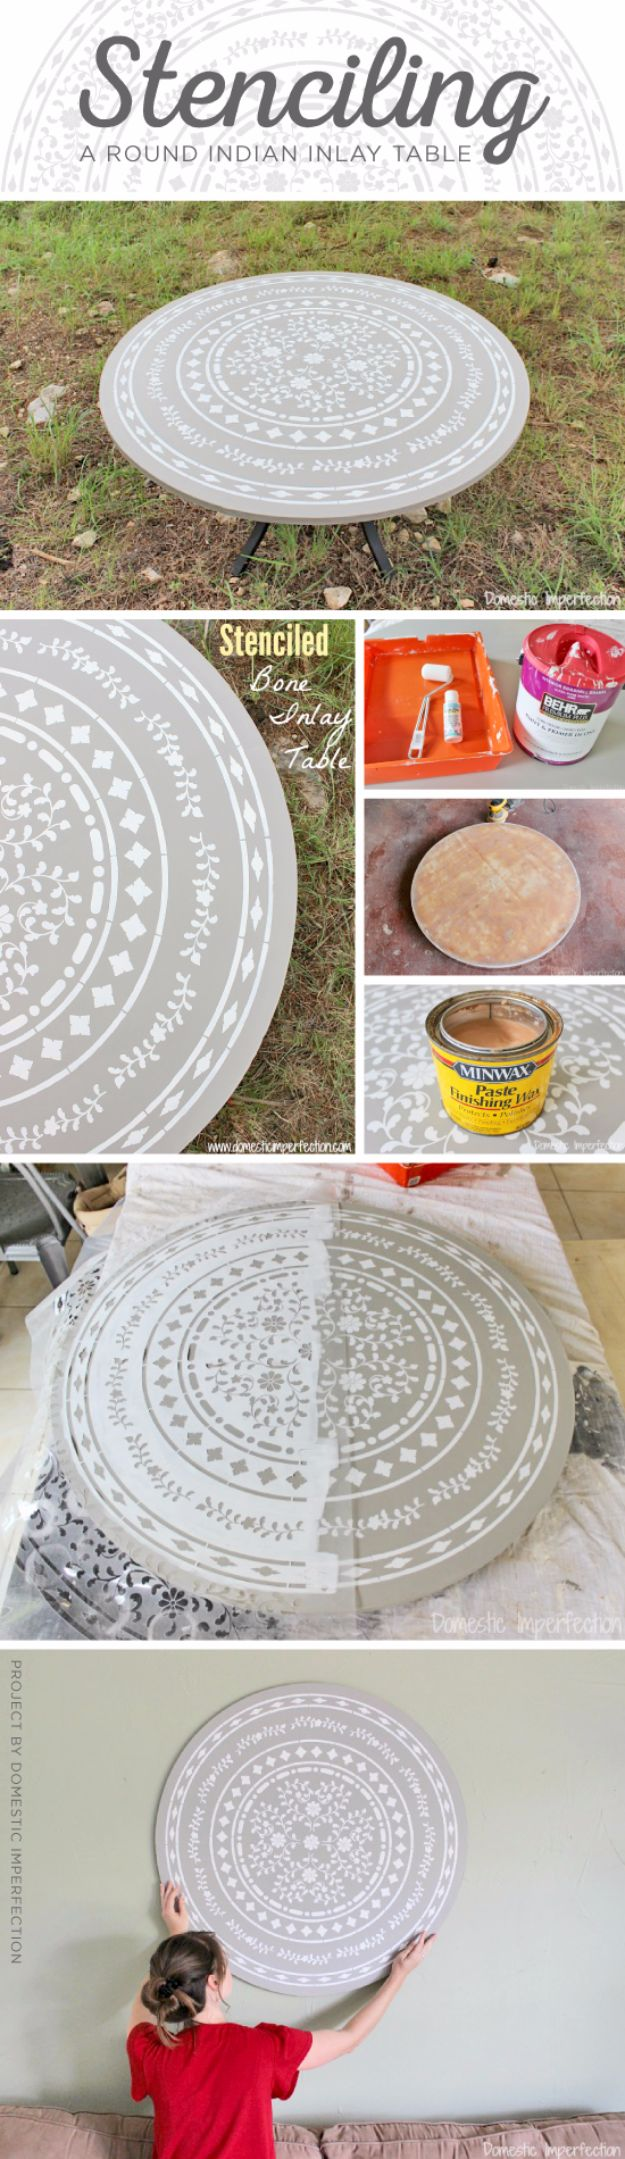 DIY Stencil Ideas - Stencil A Round Indian Inlay Table - Cool and Easy Stenciling Tutorials For Making Handmade Wallpaper and Designs, Furniture Makeover Ideas and Crafty Modern Decor With Stencils - Rustic Farmhouse Paint Techniques and Step by Step Instructions for Using Stencil Art in Your Living Room, Bedroom, Bathroom and Crafts http://diyjoy.com/diy-stencil-ideas-projects